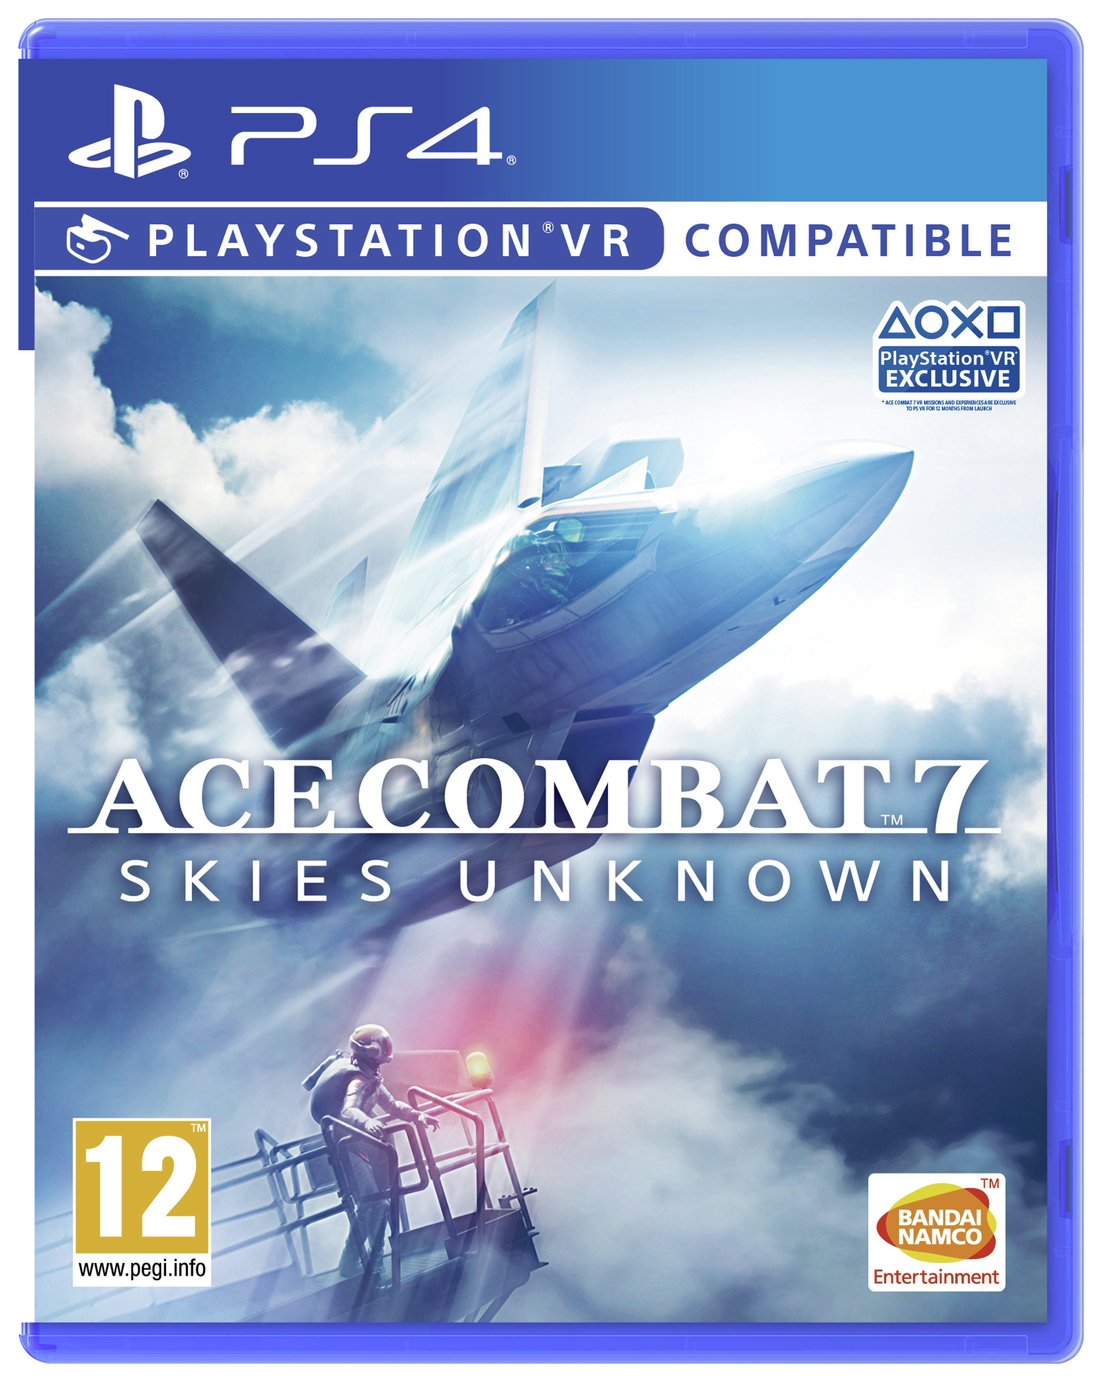 Image of Ace Combat 7: Skies Unknown PS4 Pre-Order Game